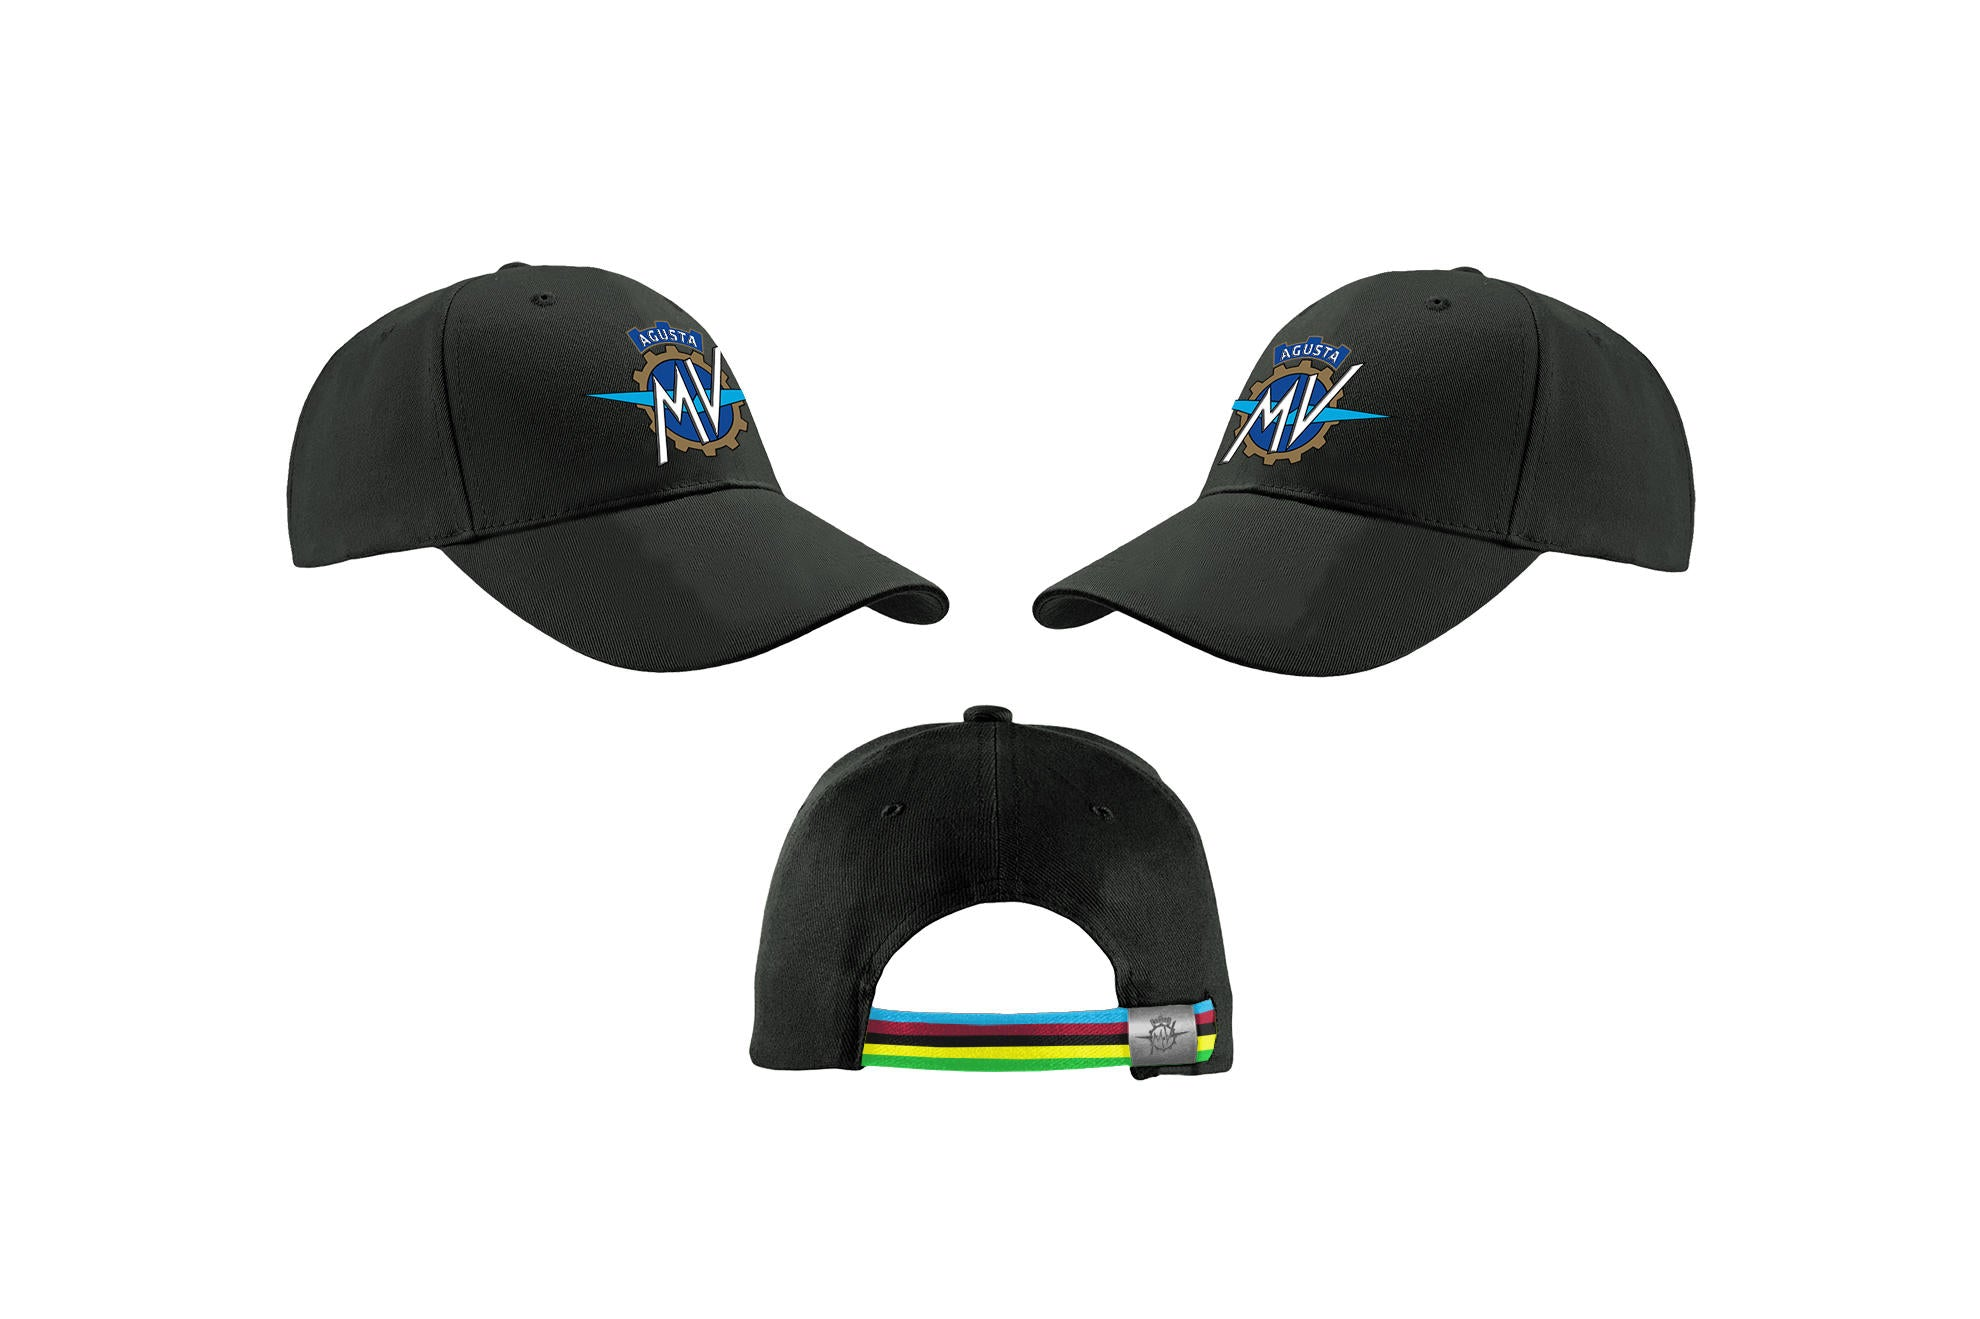 MV Agusta Vintage Baseball Cap, MV Agusta Clothing, CNC Racing - Averys Motorcycles